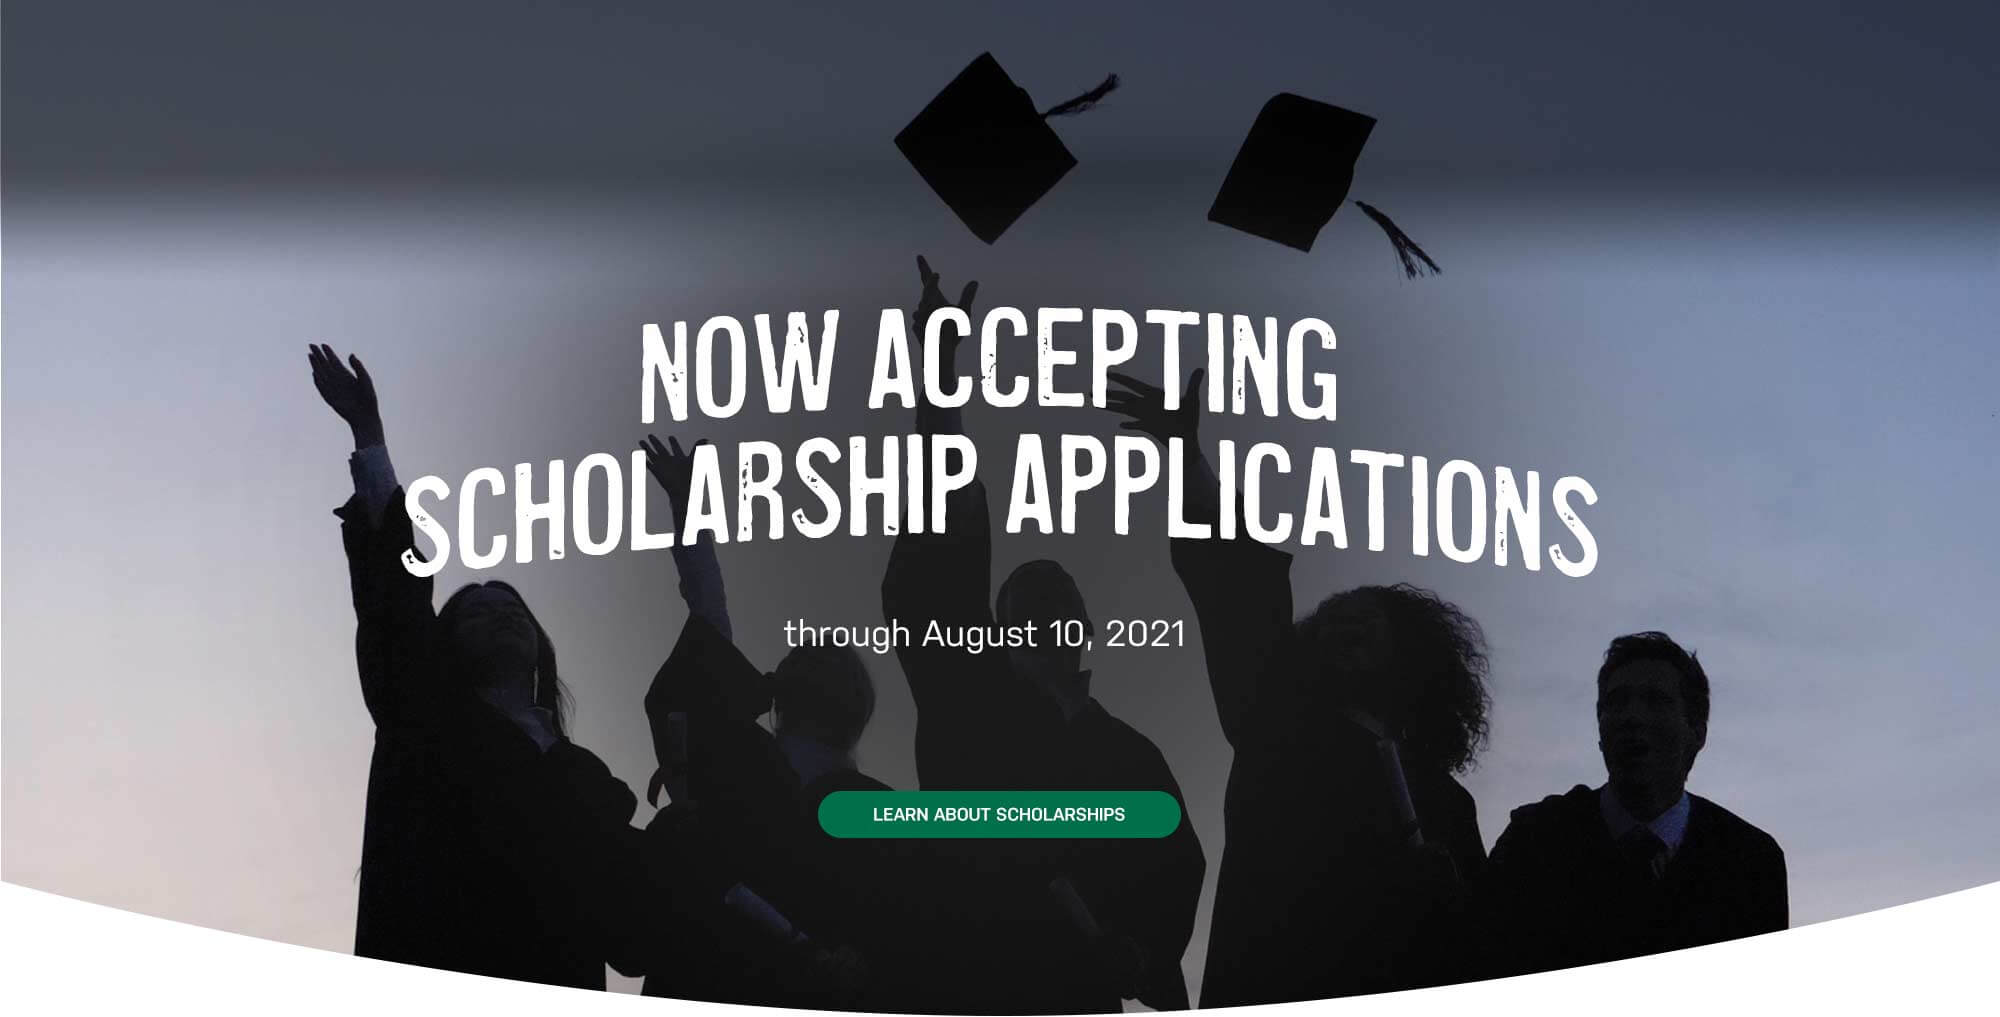 Now accepting scholarship applications through August 10 2021. Learn more about scholarships